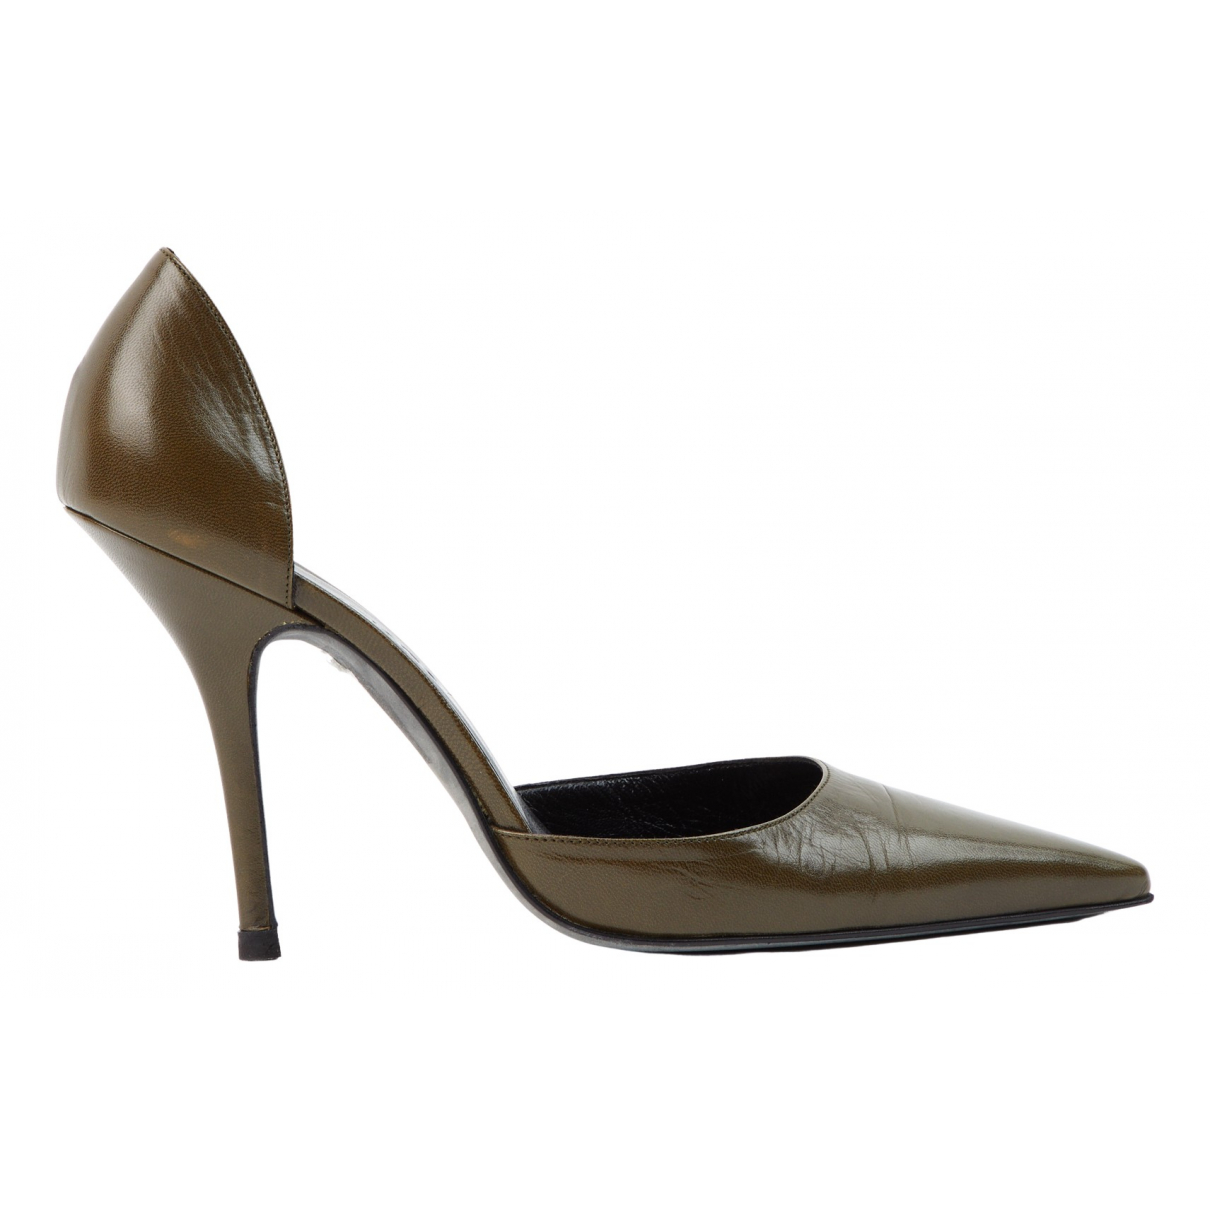 Balenciaga \N Pumps in  Khaki Leder